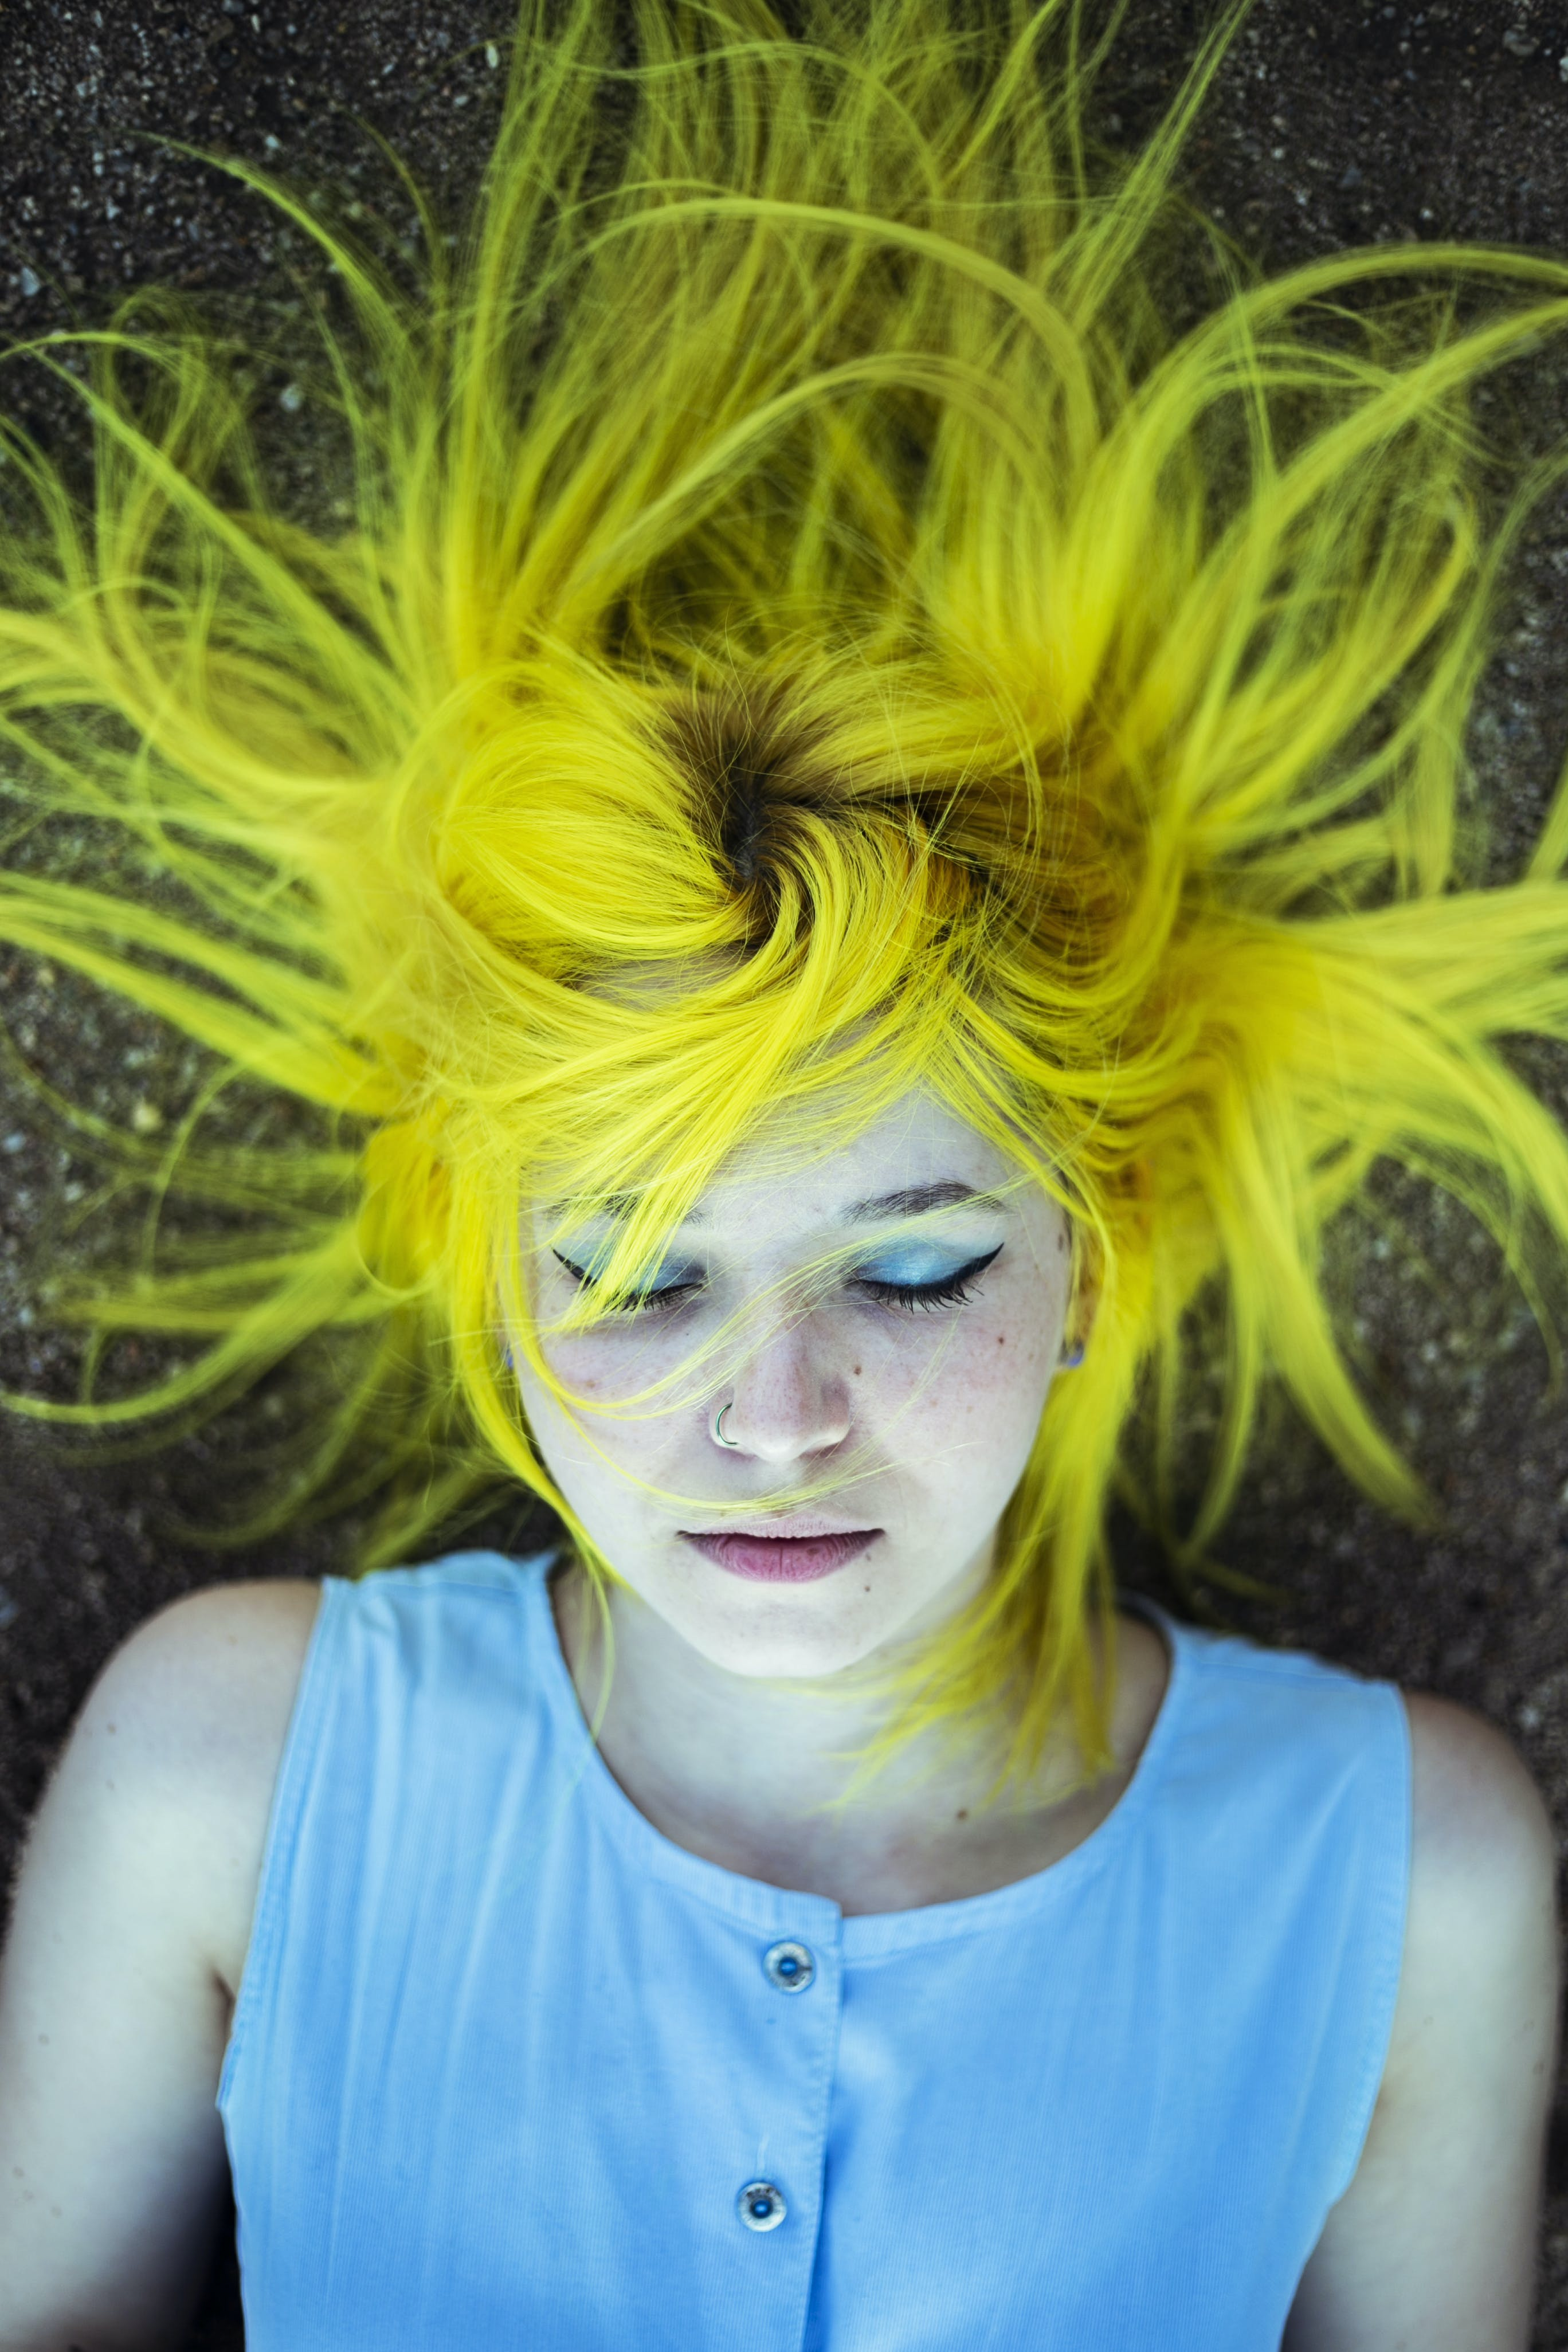 Woman With Yellow Hair Lying On The Ground